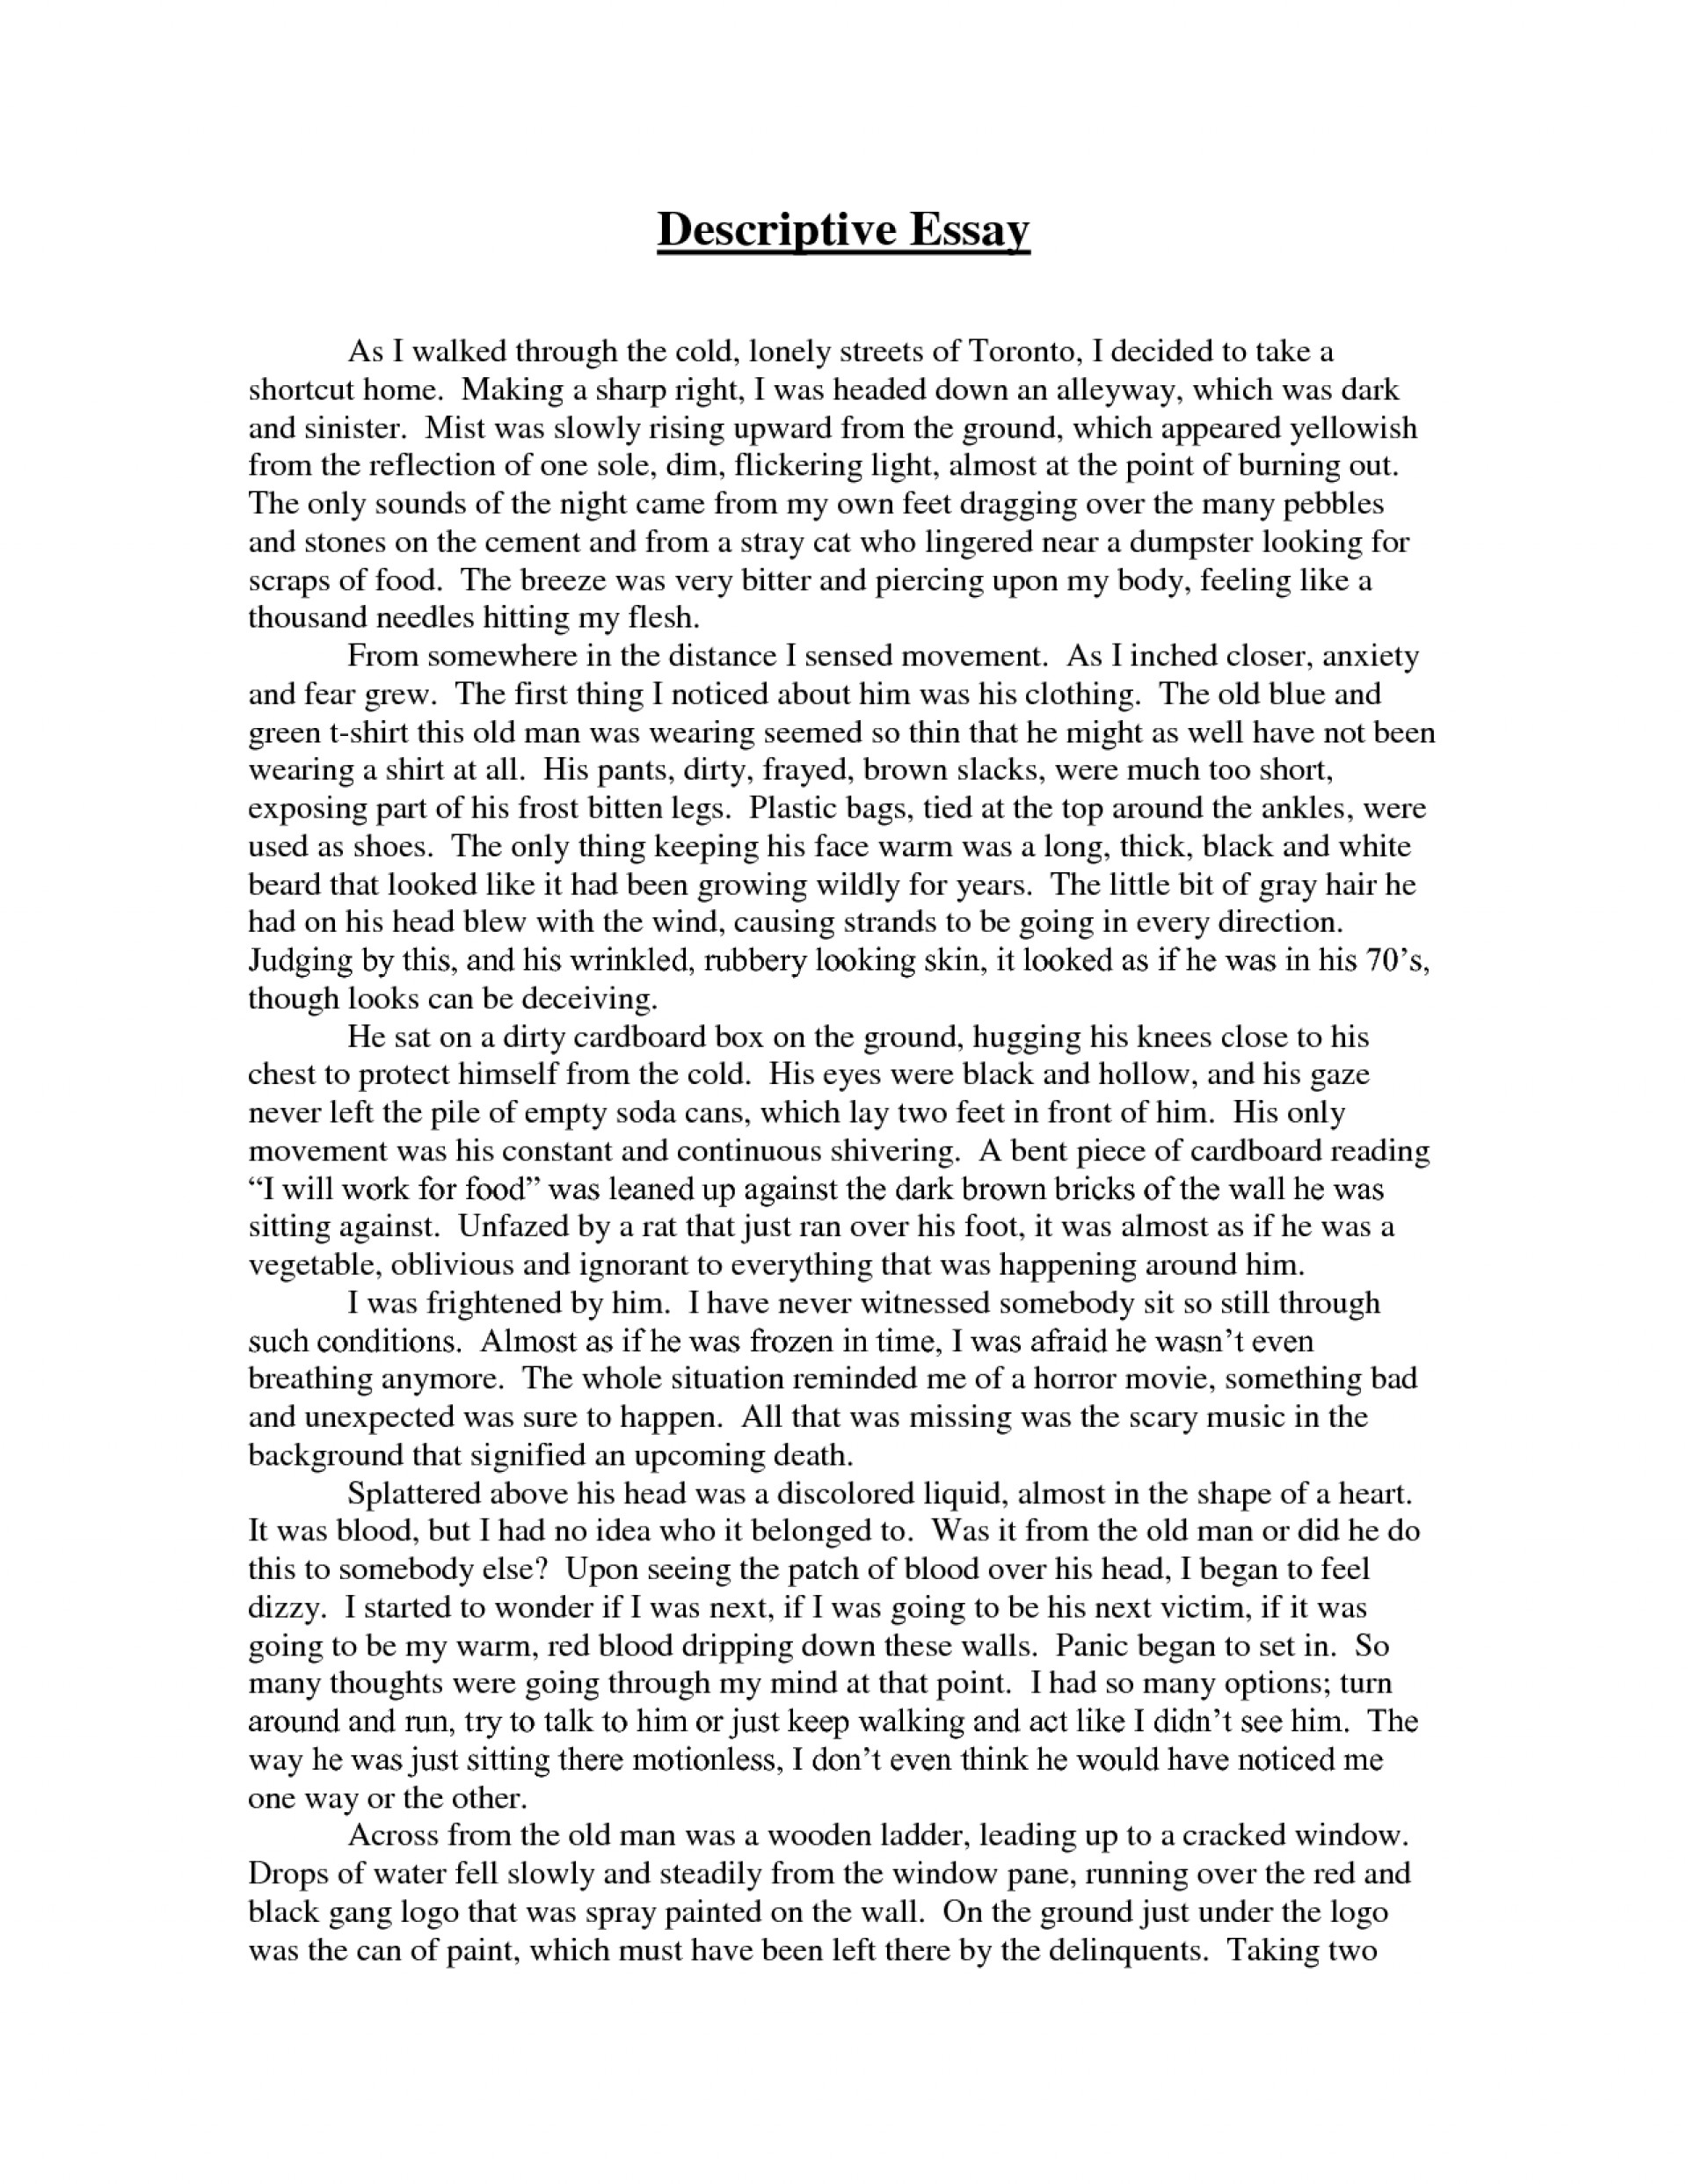 001 Discriptive Essay Cover Letter Example For Descriptive How Write Writing Paragraph About Place To Of In Philippines Impressive Food Short My Favorite Junk Festival 1920